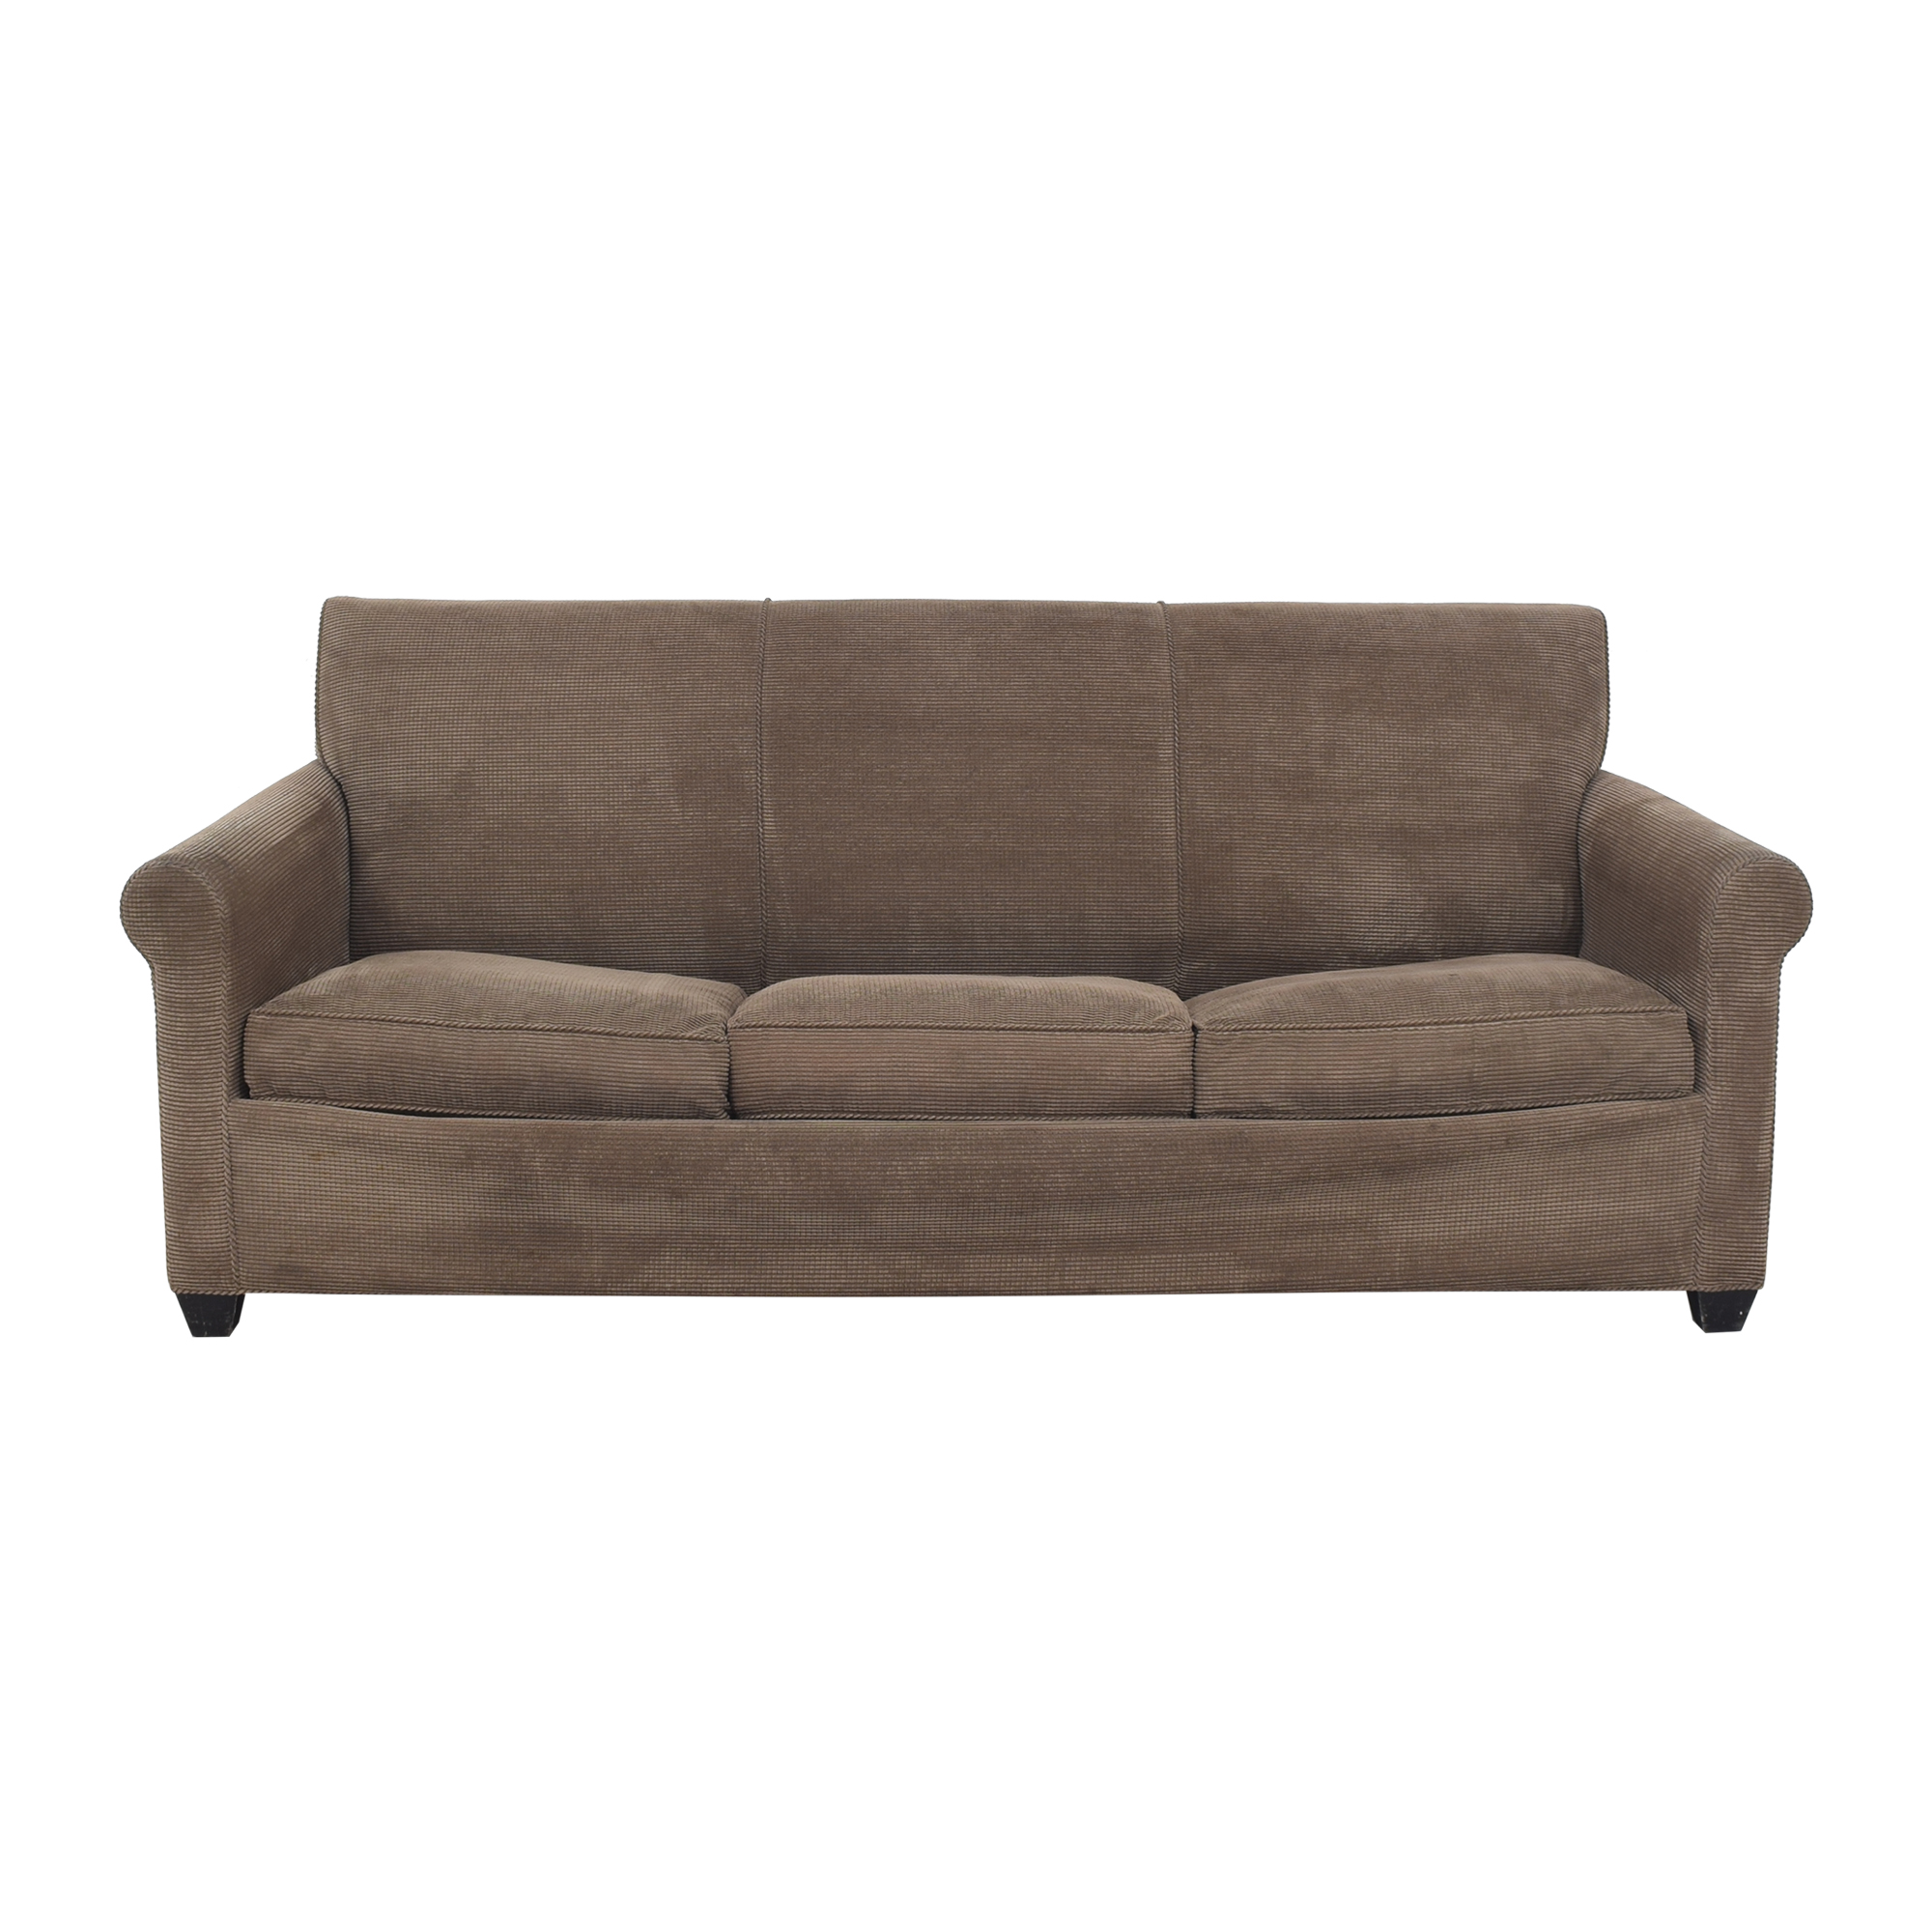 Crate & Barrel Crate & Barrel Sleeper Sofa brown